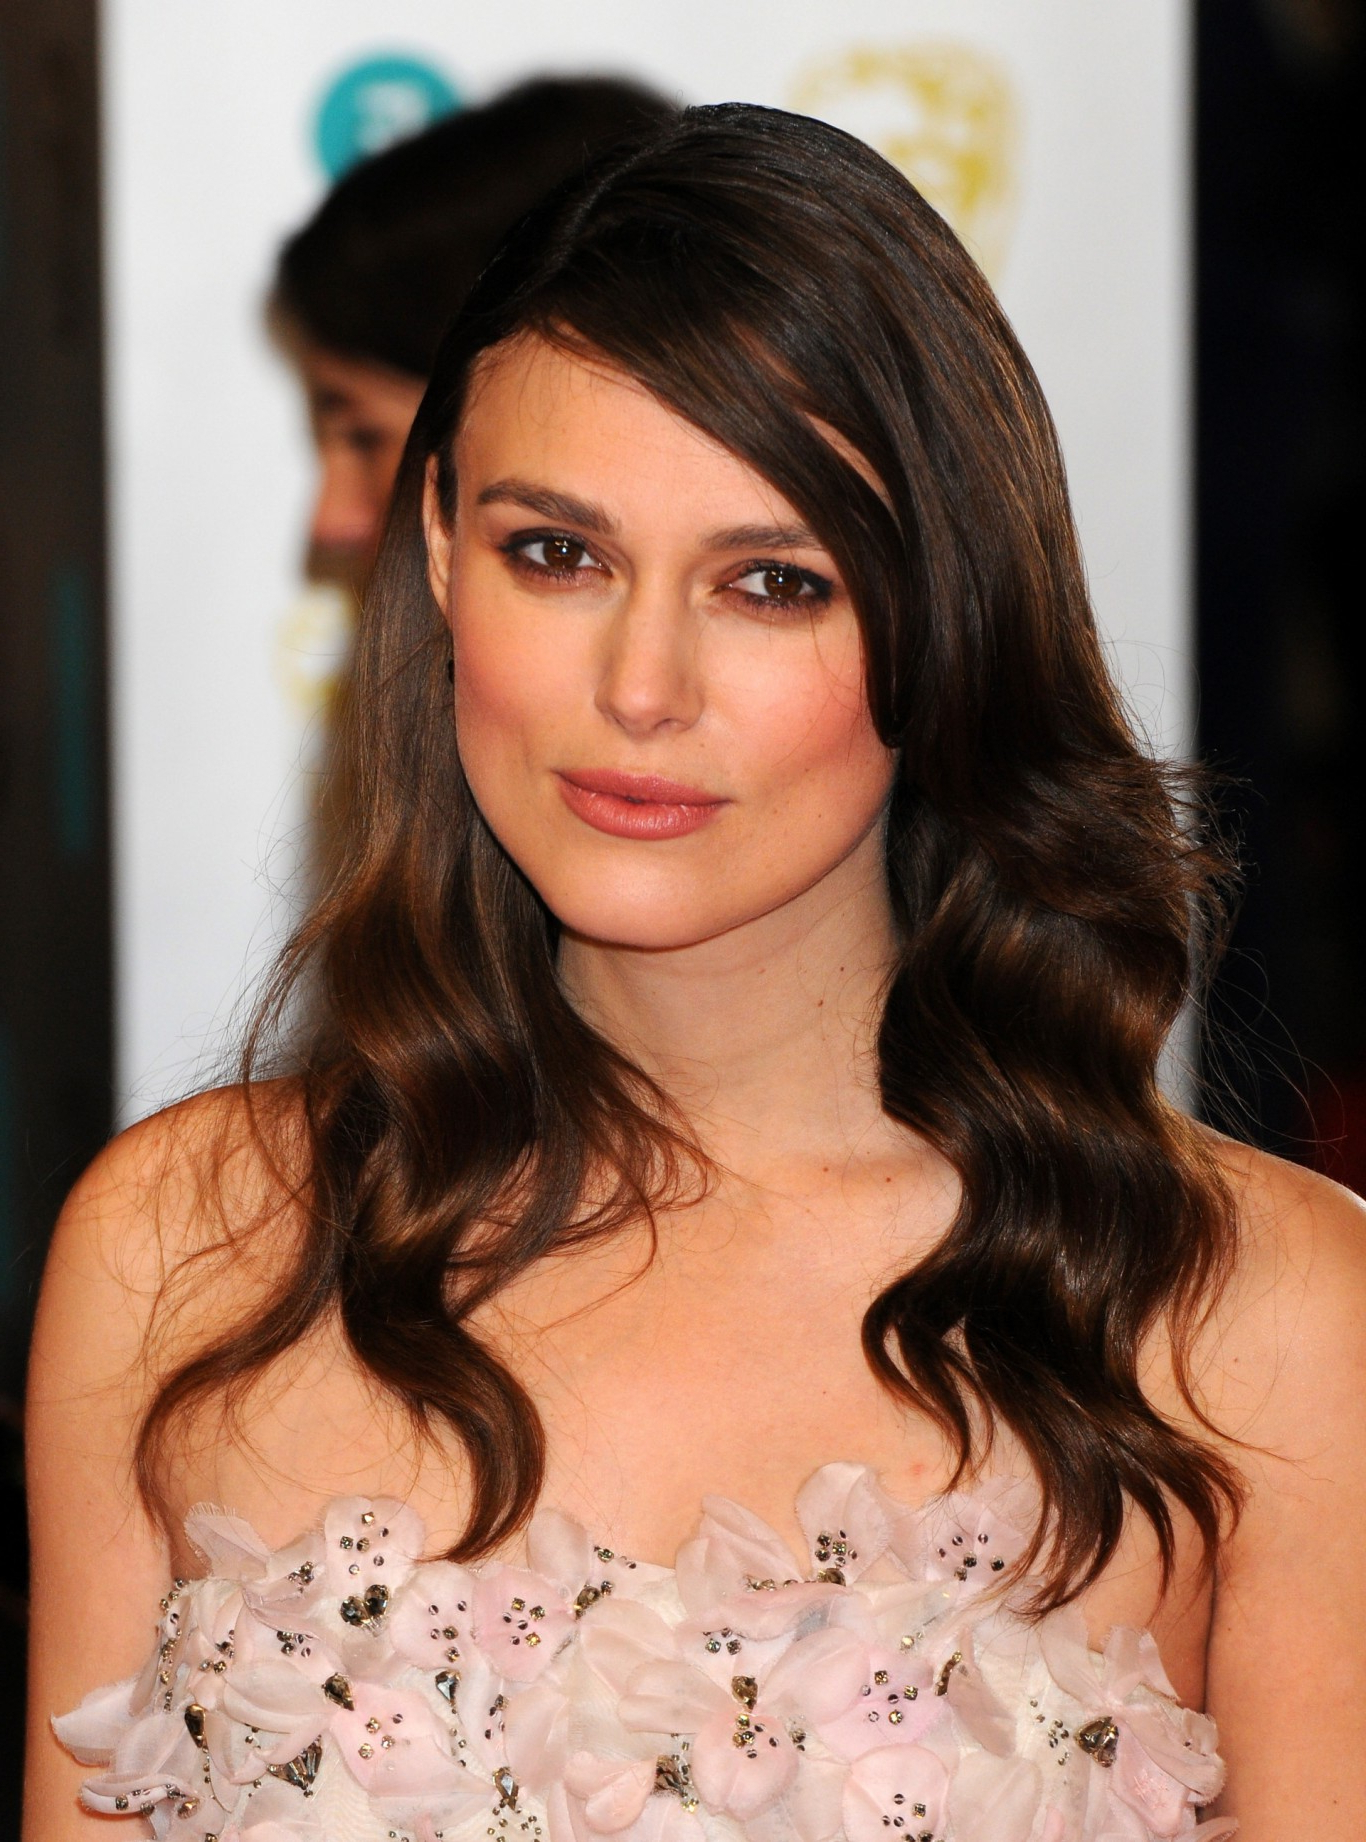 2018 Keira Knightley Medium Hairstyles In Recreate Rita Ora, Keira Knightley And Natalie Dormer's Red Carpet (View 1 of 20)